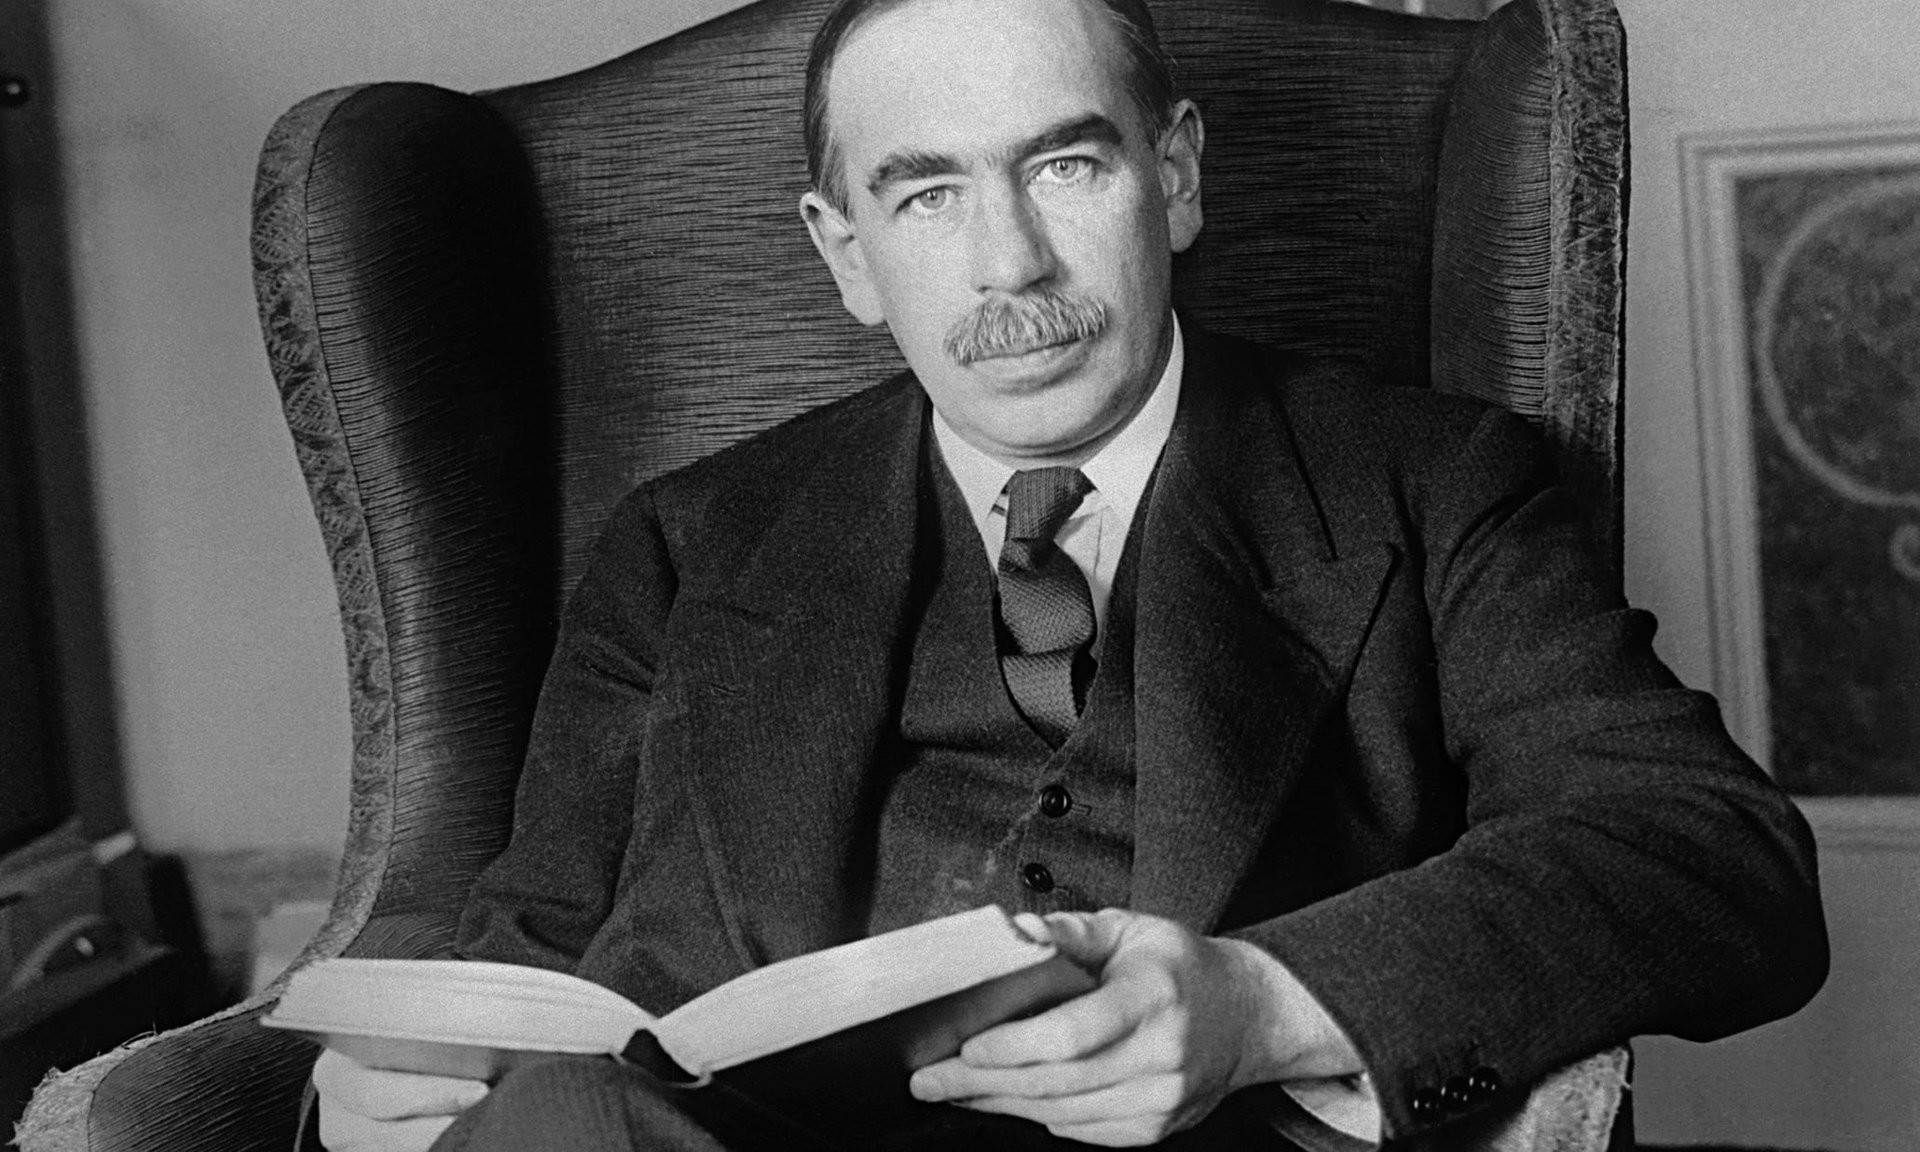 /the-misunderstood-15-hour-work-week-of-john-maynard-keynes-9d4561c96ab6 feature image